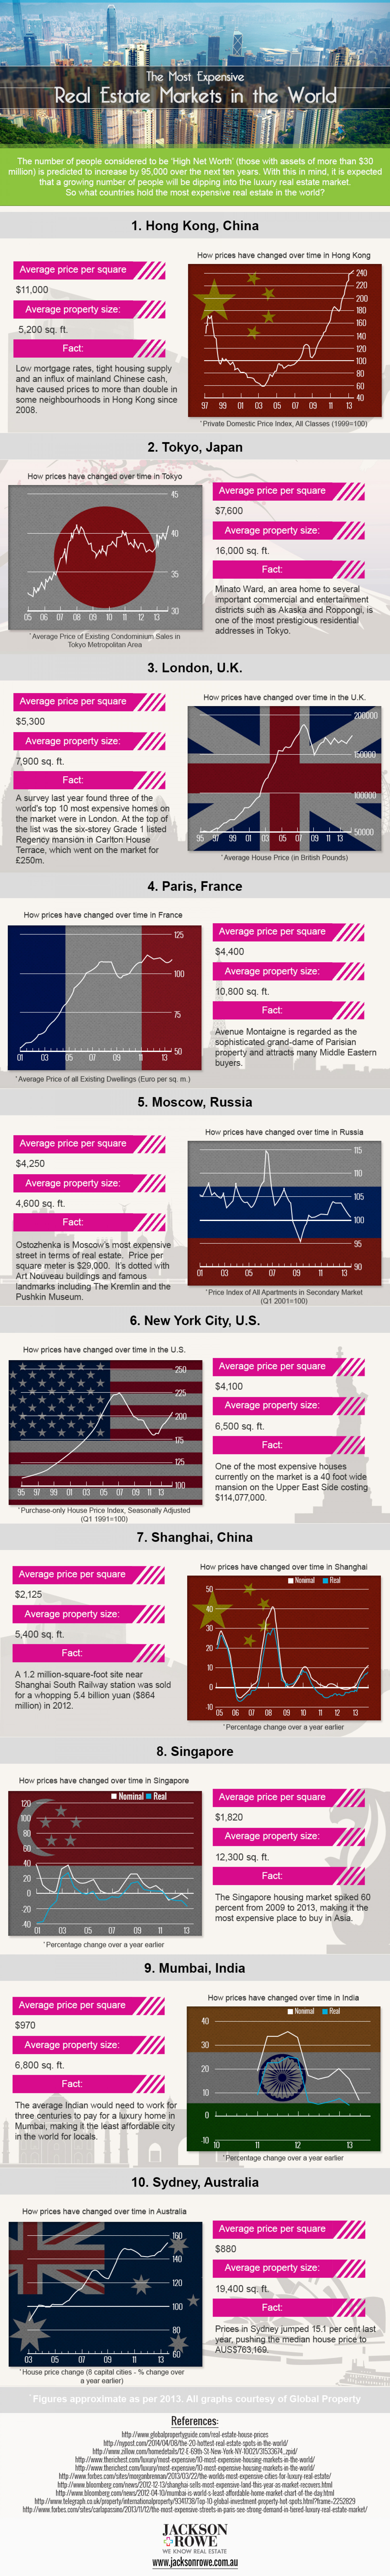 The Most Expensive Real Estate Markets in the World Infographic